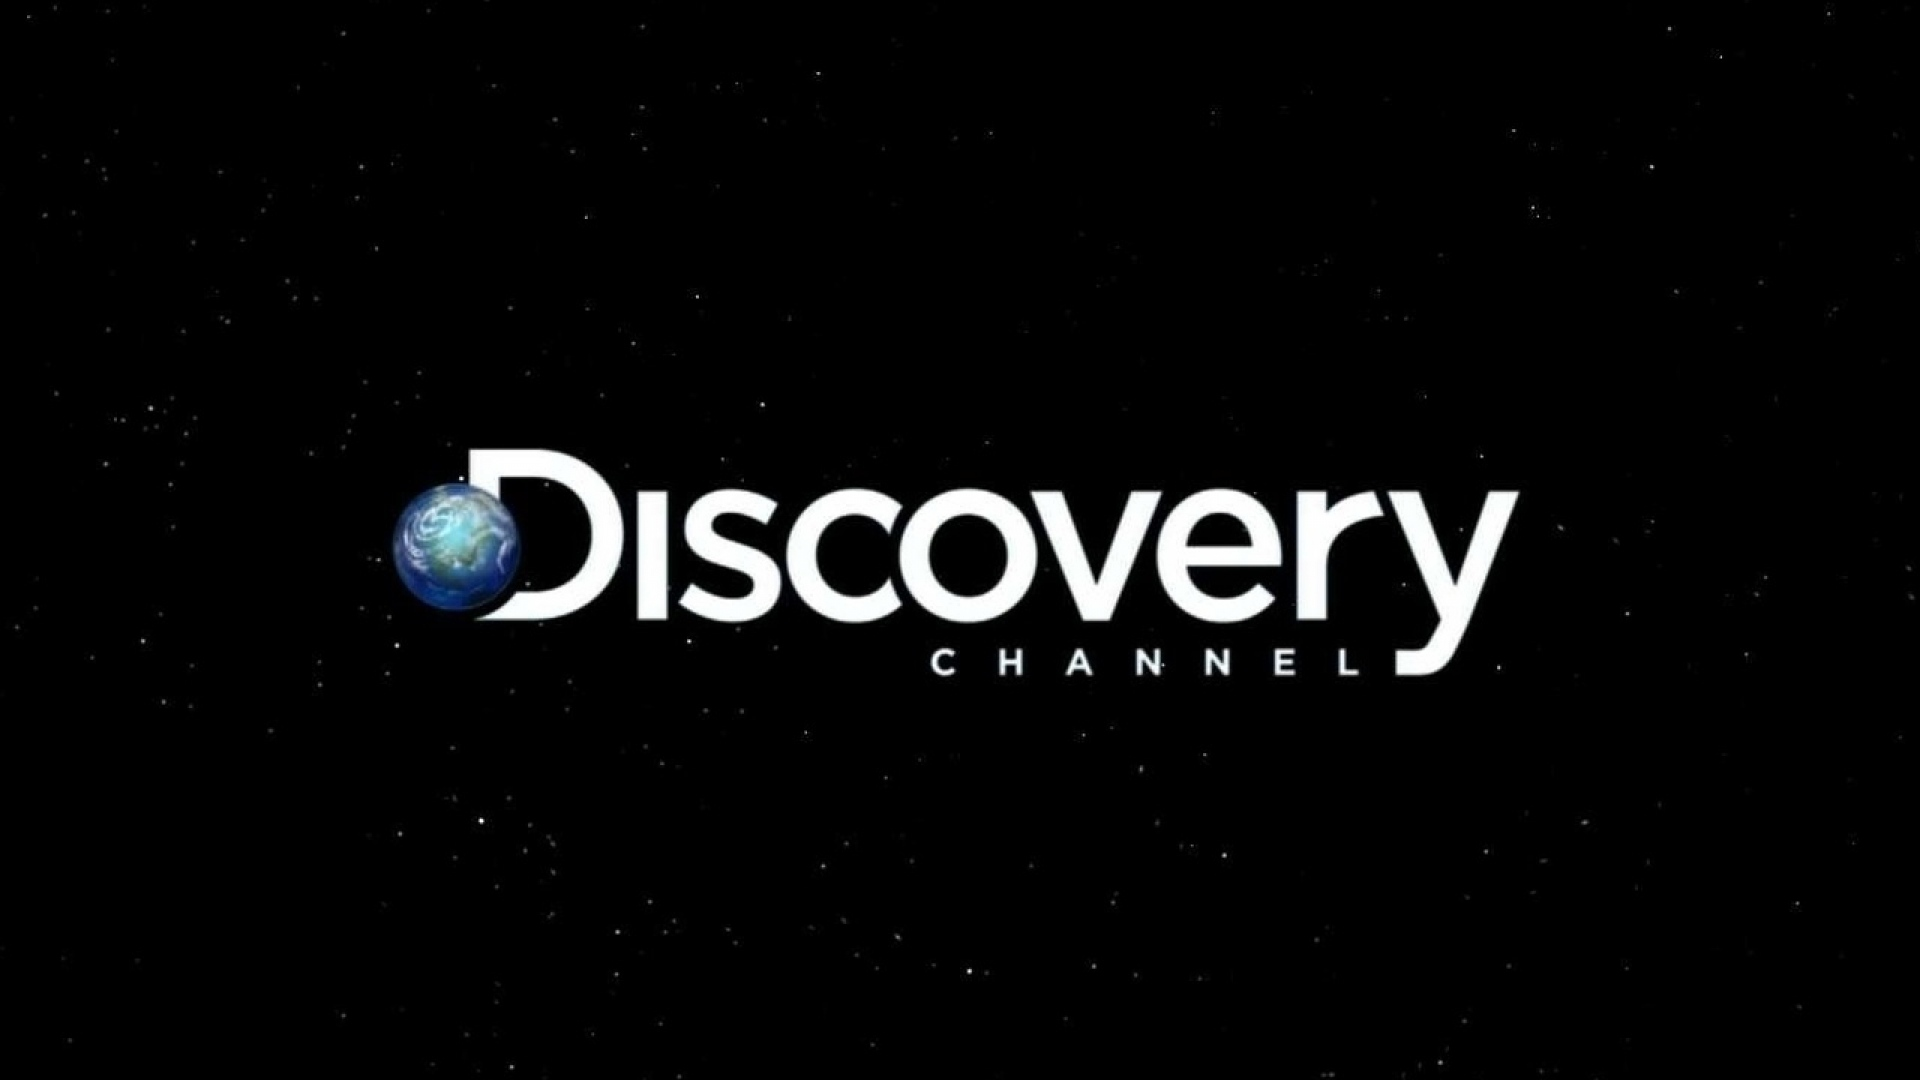 download wallpaper 1920x1080 discovery channel science